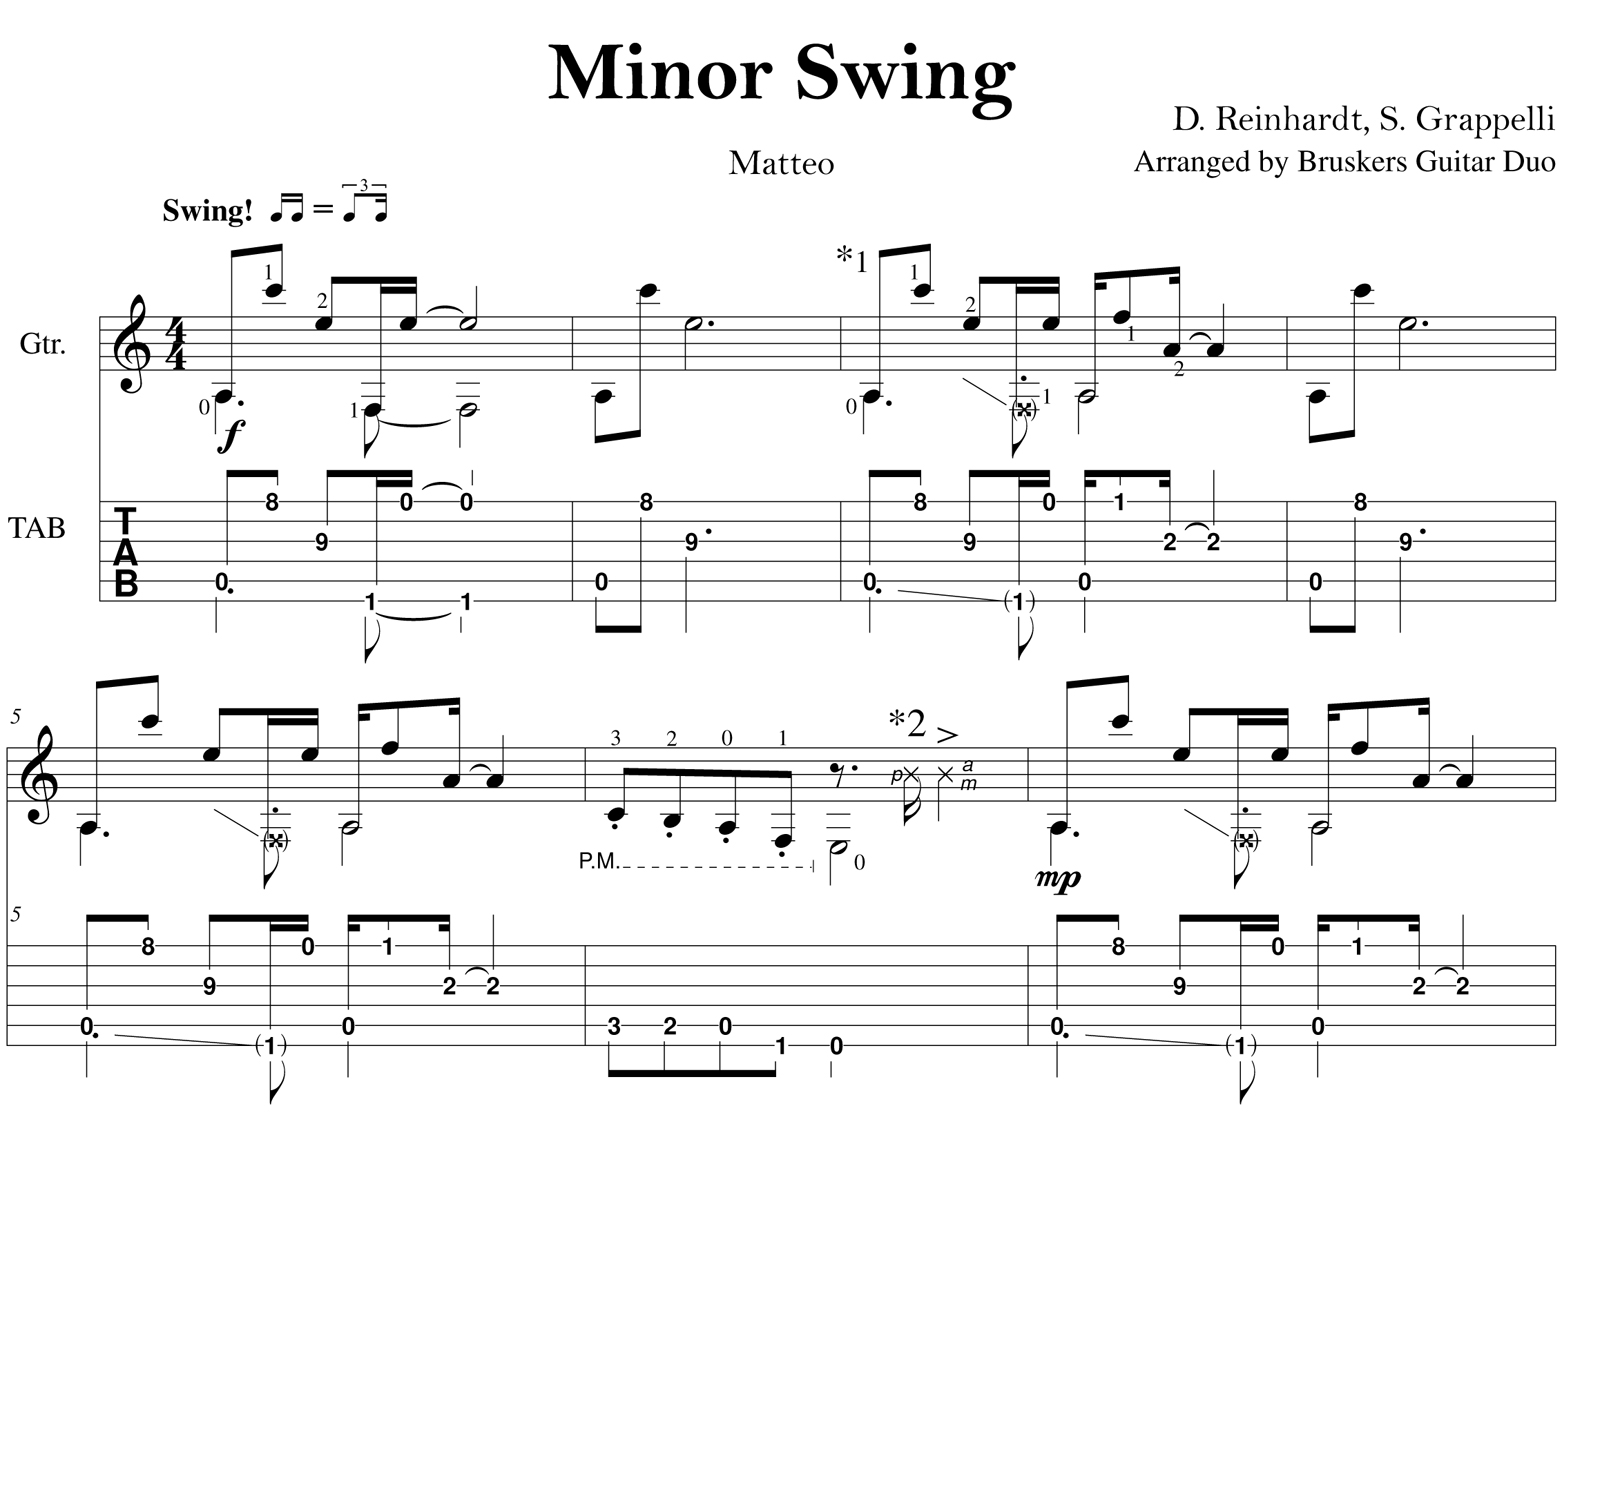 Minor Swing - Score scrap - Bruskers Guitar Duo